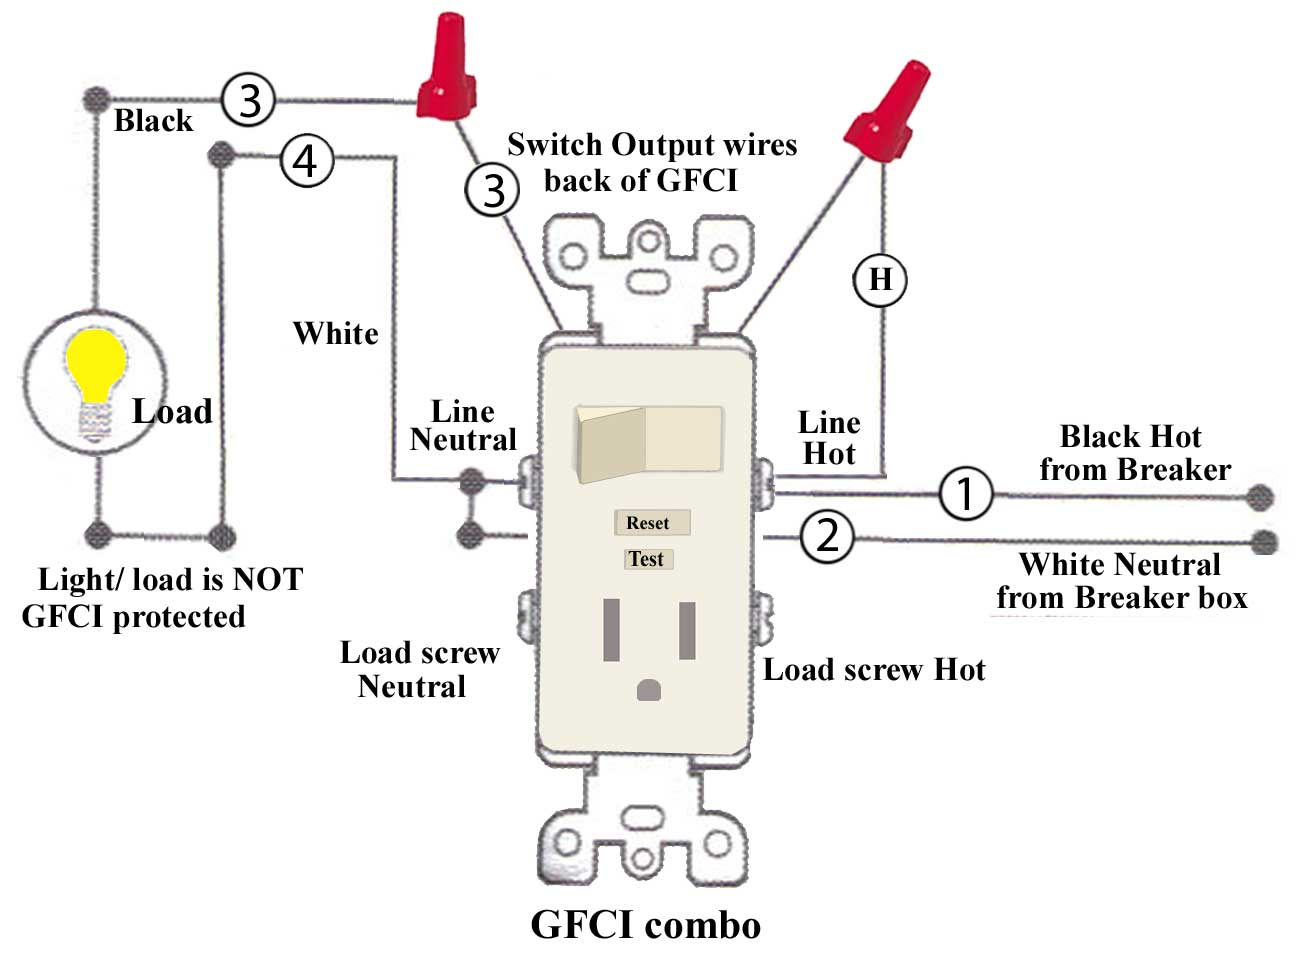 GFCI combo wiring 4 how to install and troubleshoot gfci GFCI Breaker Wiring Diagram at crackthecode.co